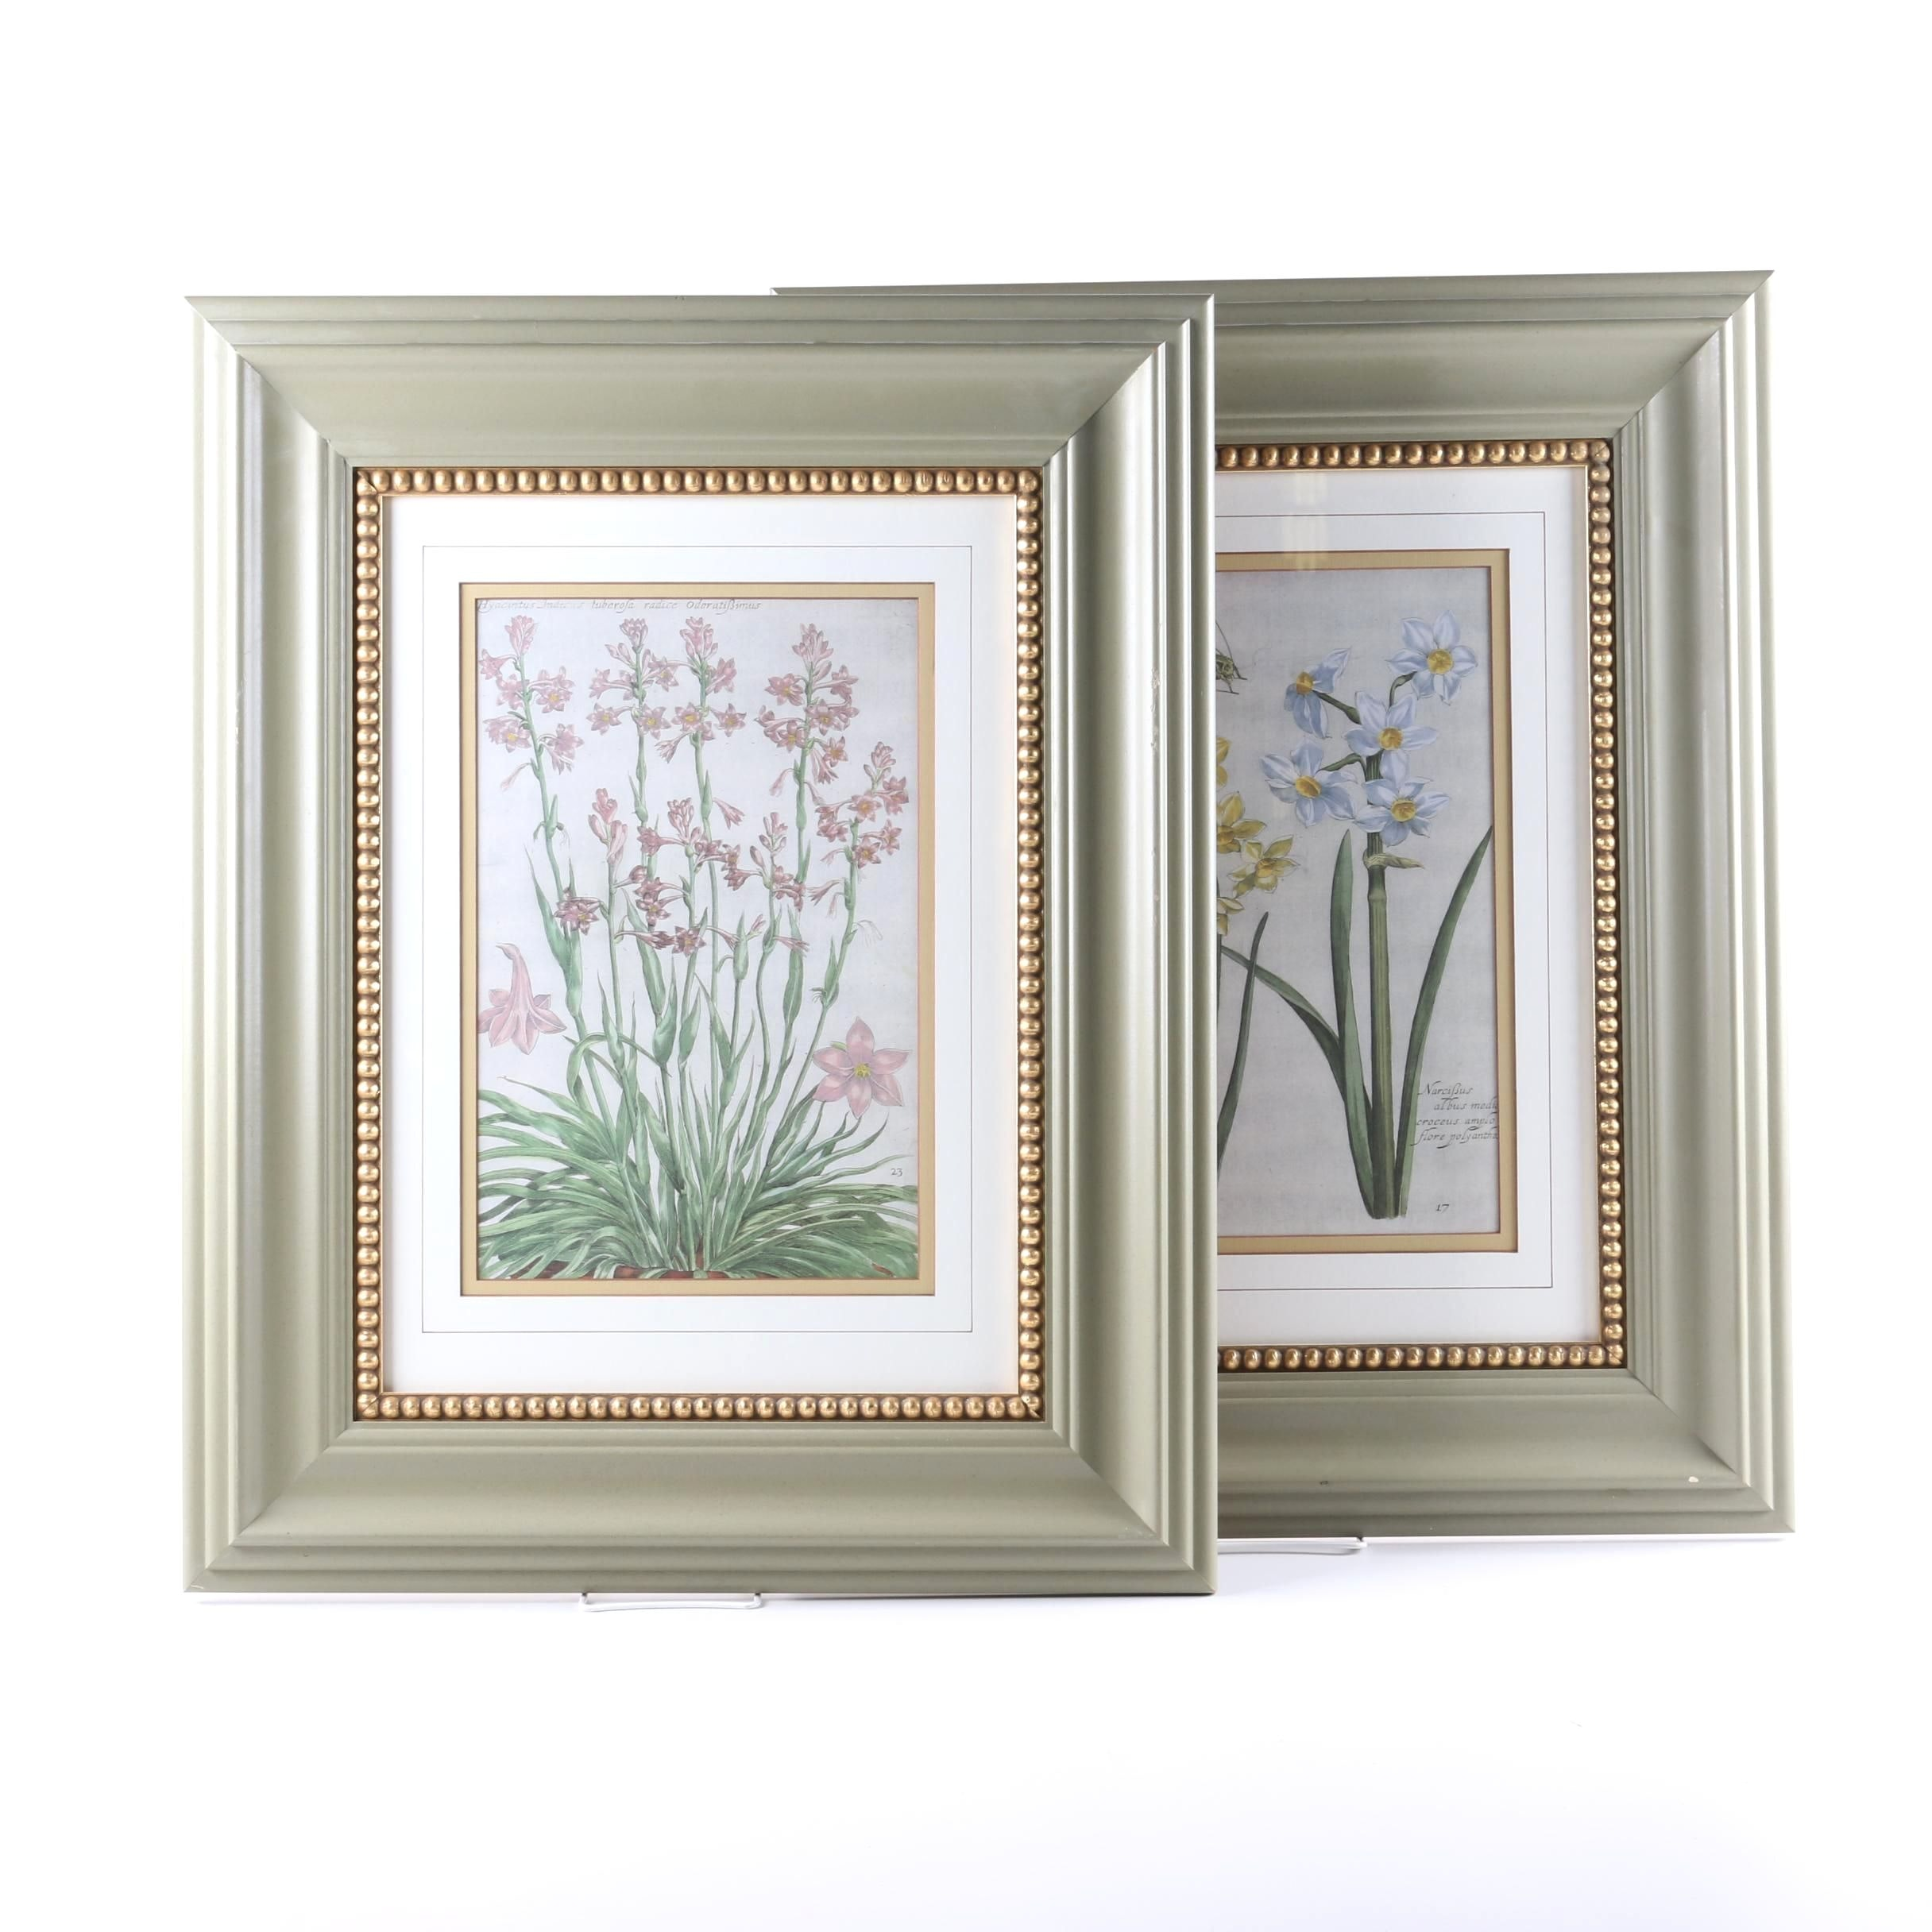 Pair of Floral Still Life Offset Lithographs